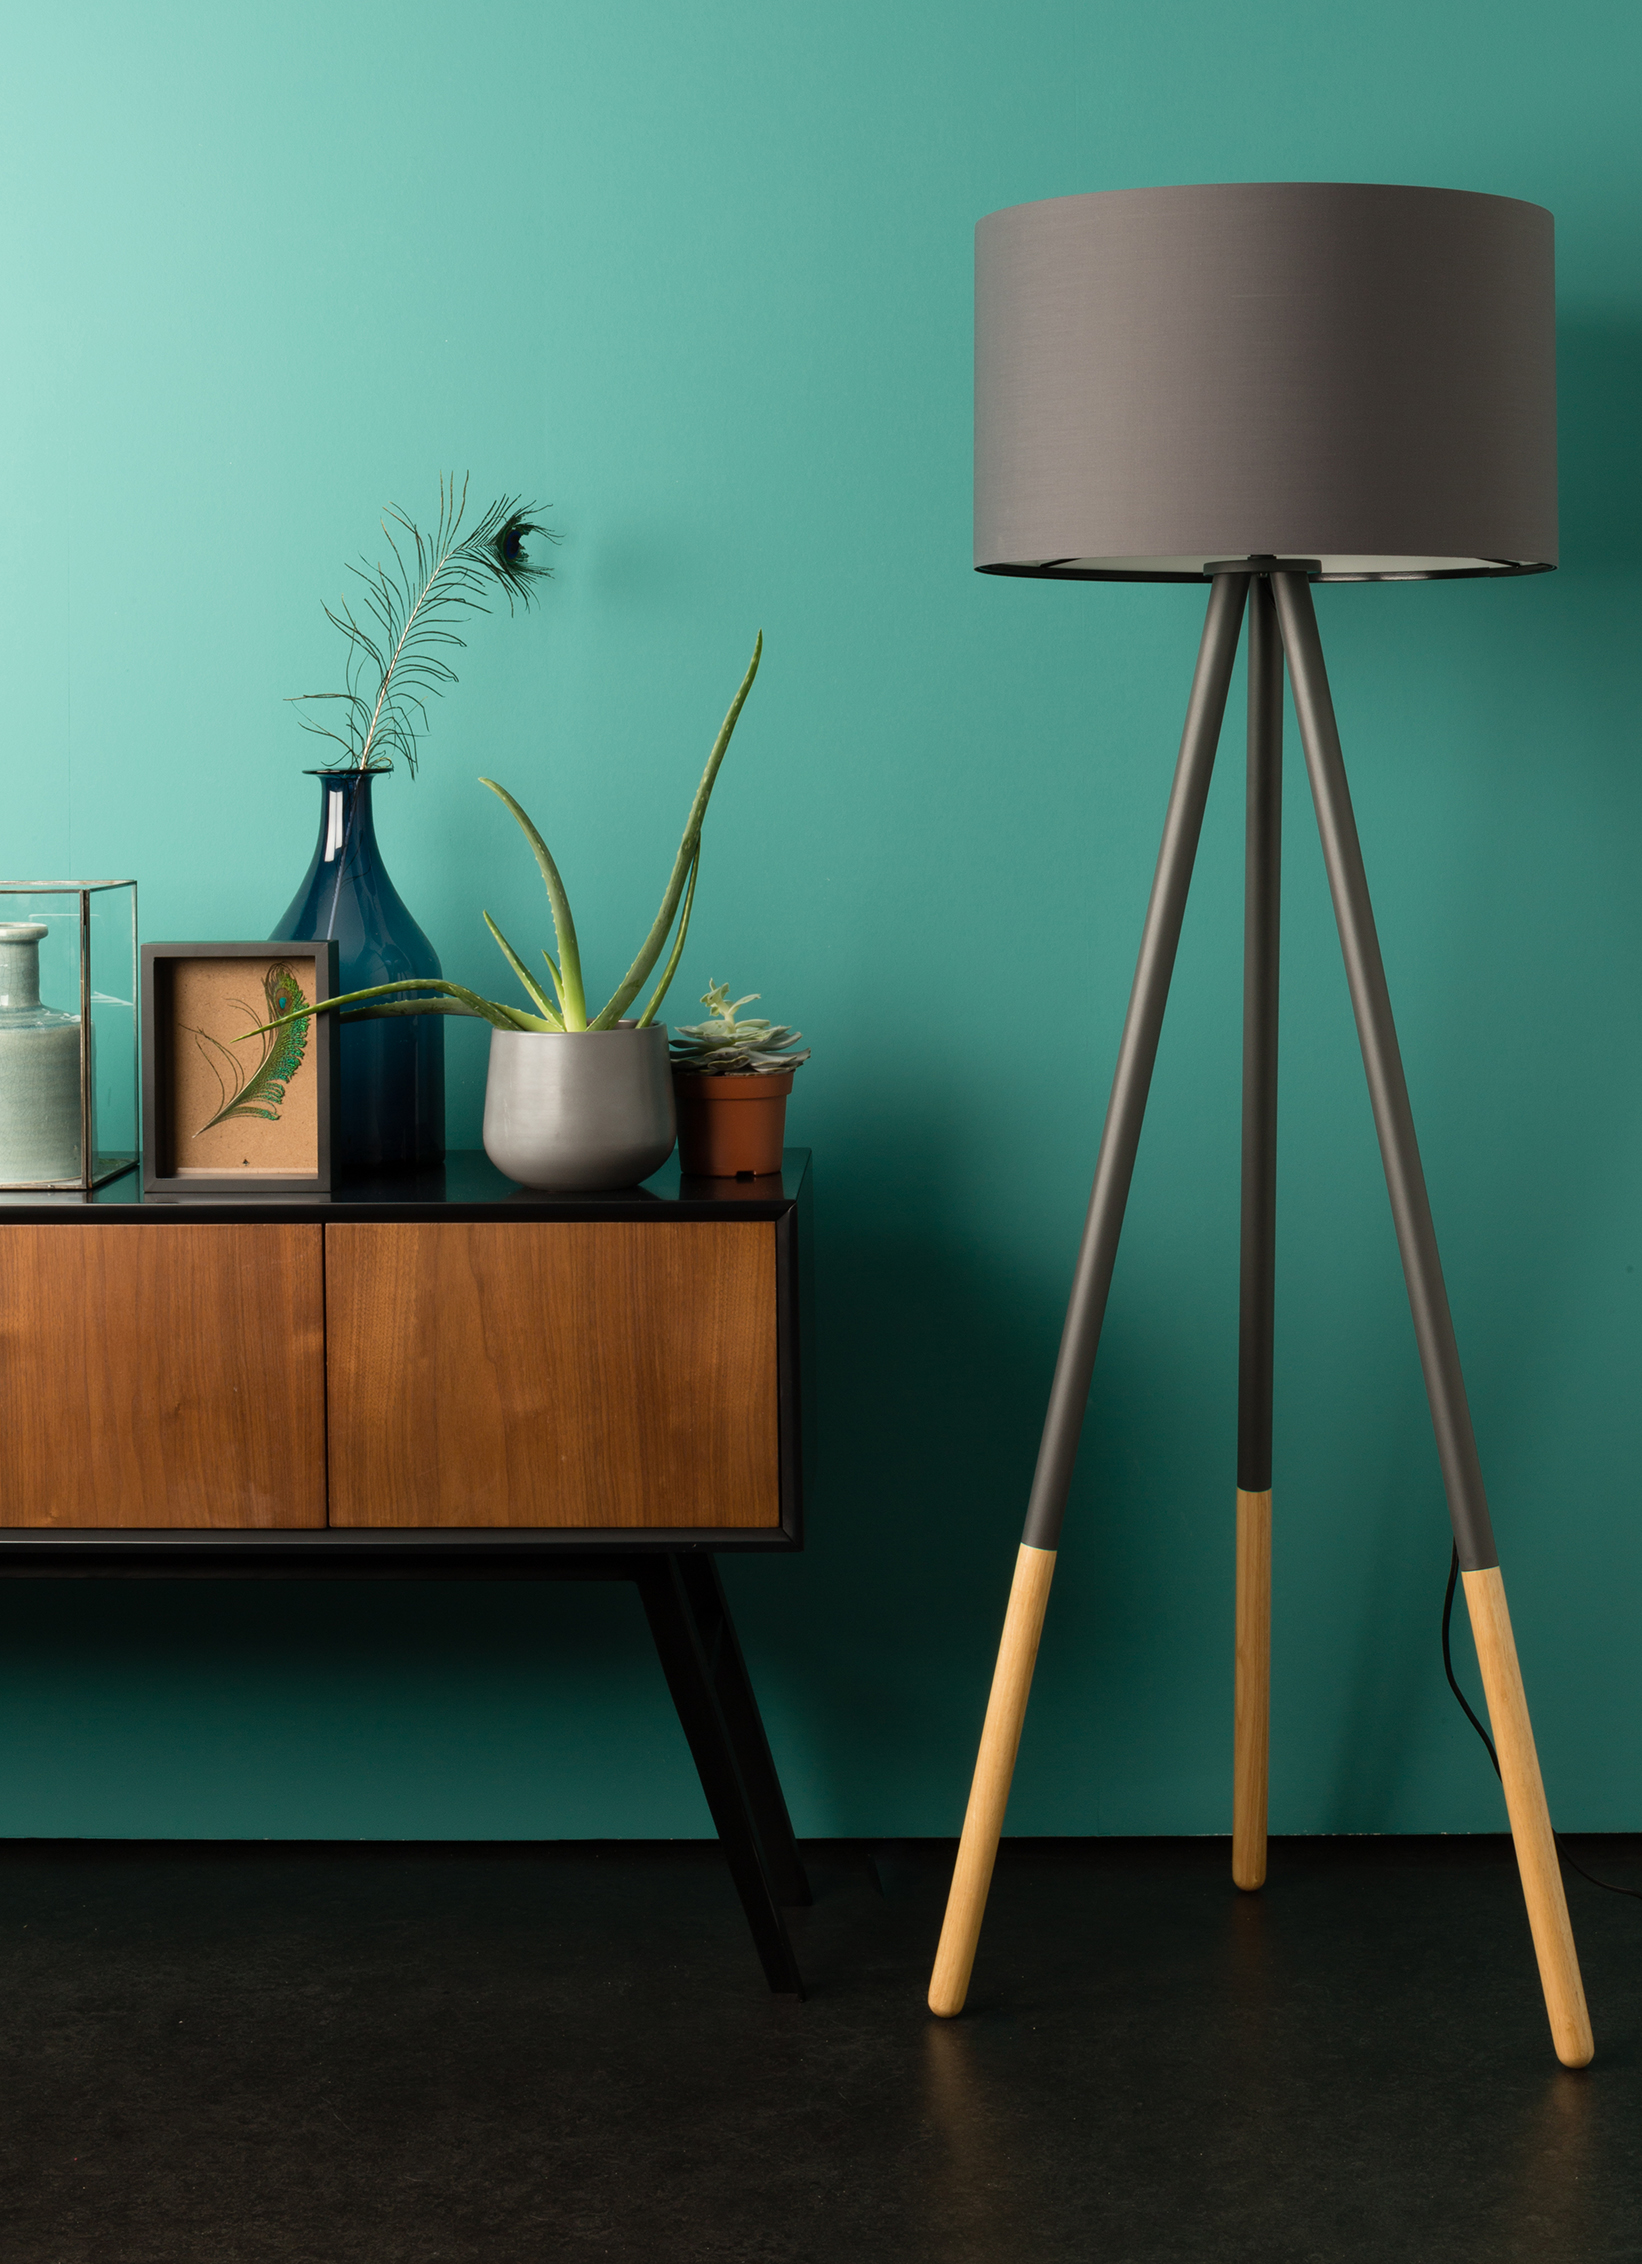 8 Modern Floor Lamps Pictures That Are Hot on Pinterest This Week (1) hot on pinterest 8 Modern Floor Lamps Pictures That Are Hot on Pinterest This Week 8 Modern Floor Lamps Pictures That Are Hot on Pinterest This Week 5